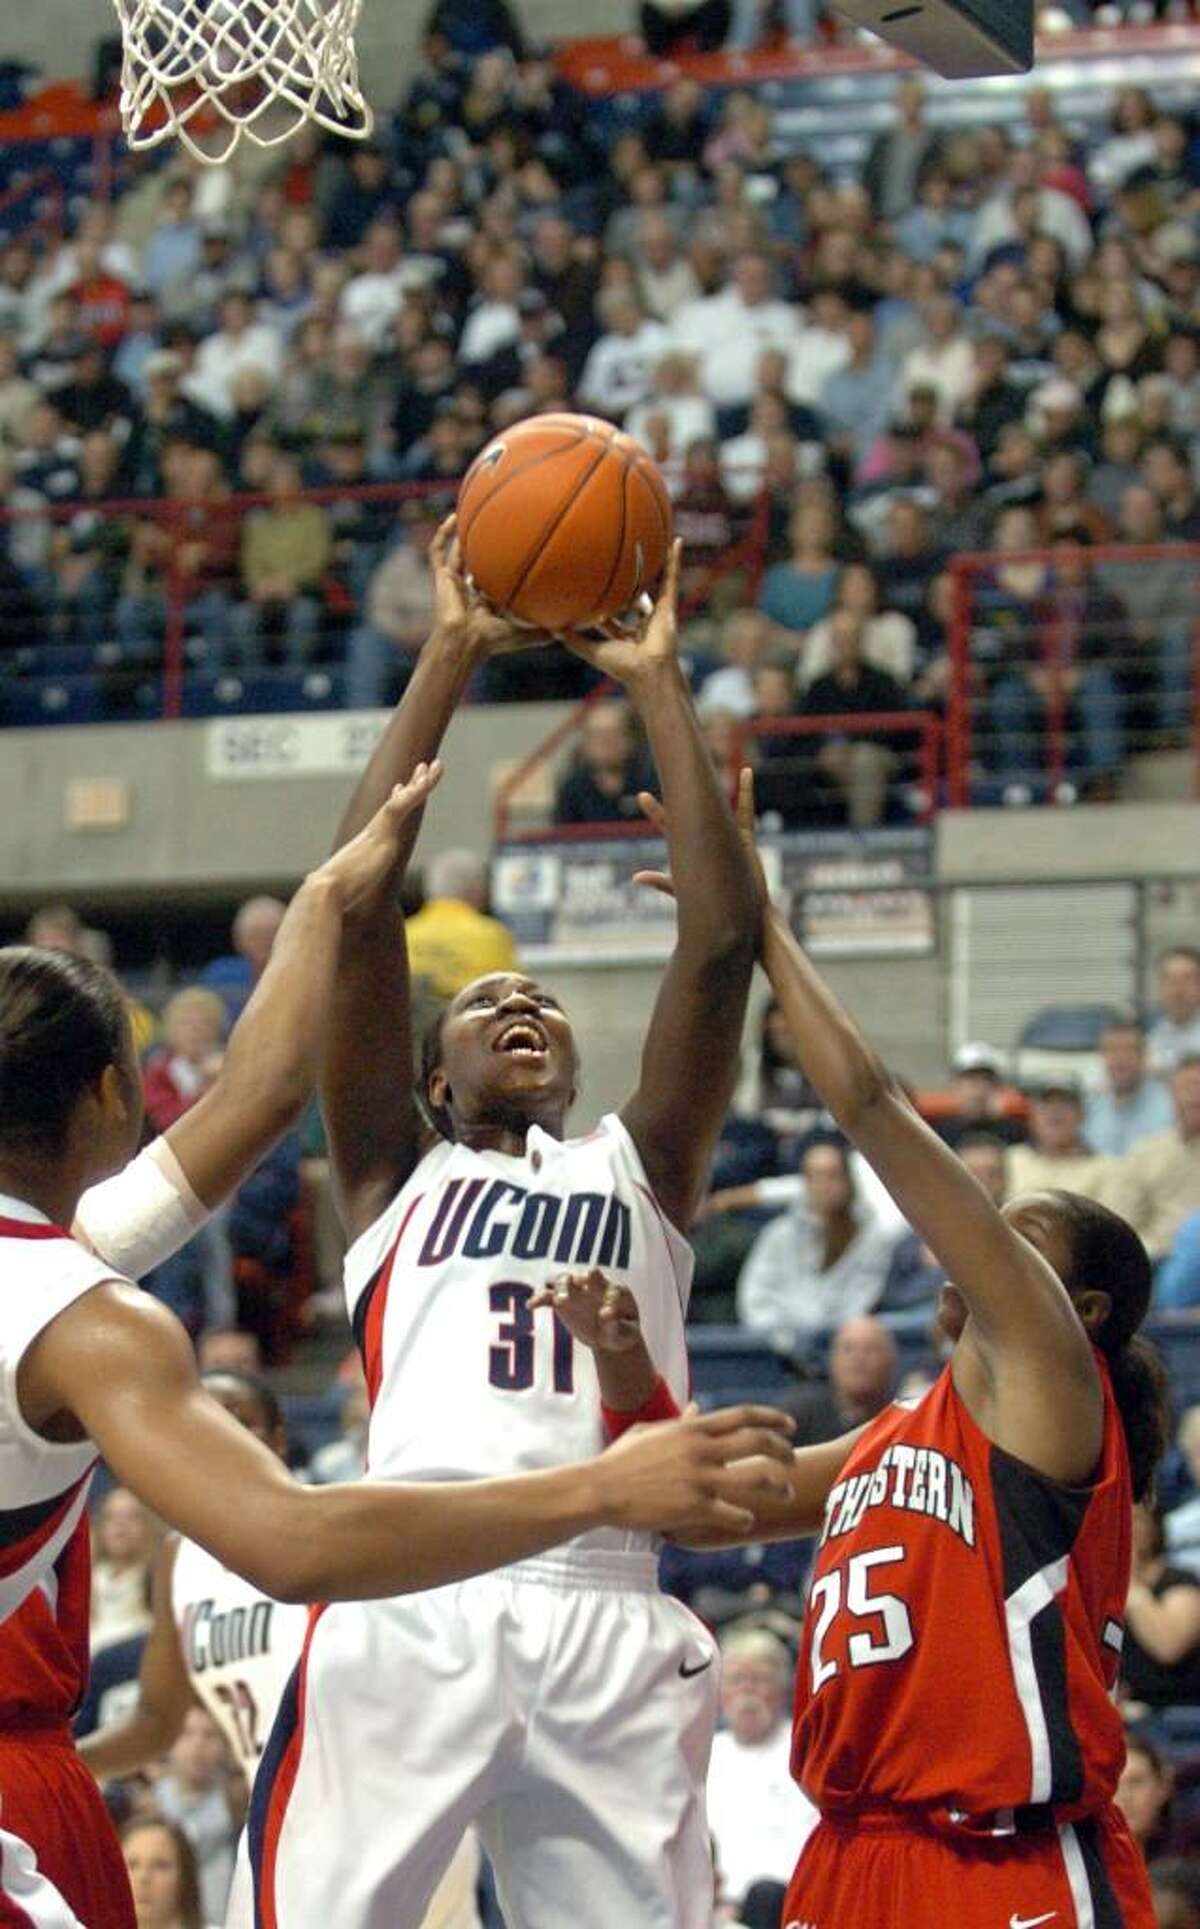 UConn's Tina Charles puts up the ball as Northeastern's Kashaia Cannon defends during the first half of Saturday's season opener at Gampel Pavilion